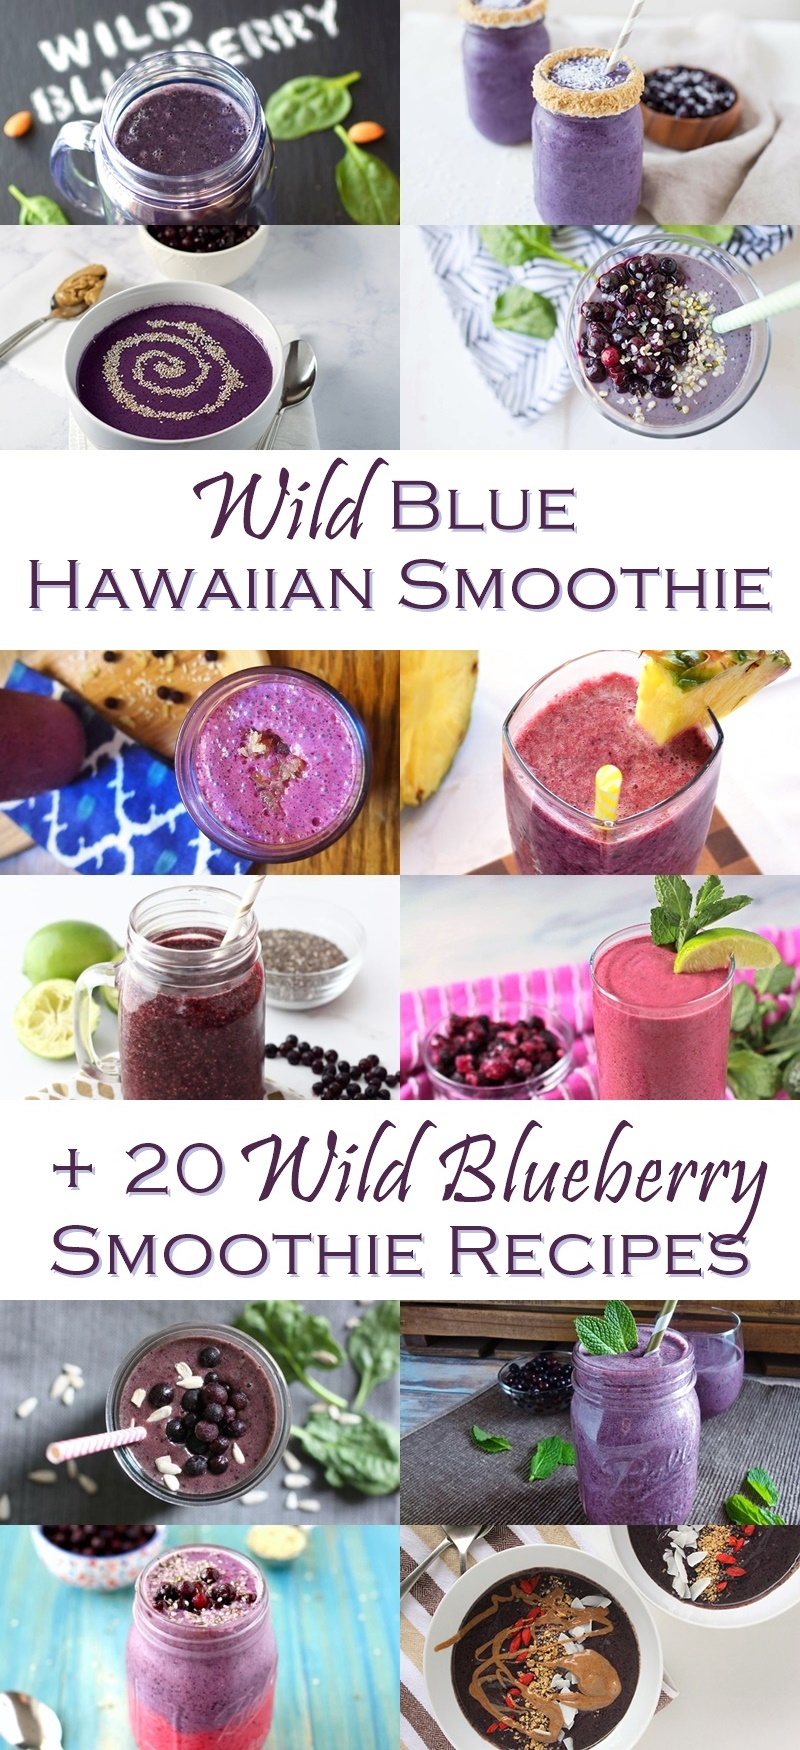 21 Dairy-Free Wild Blueberry Smoothie Recipes